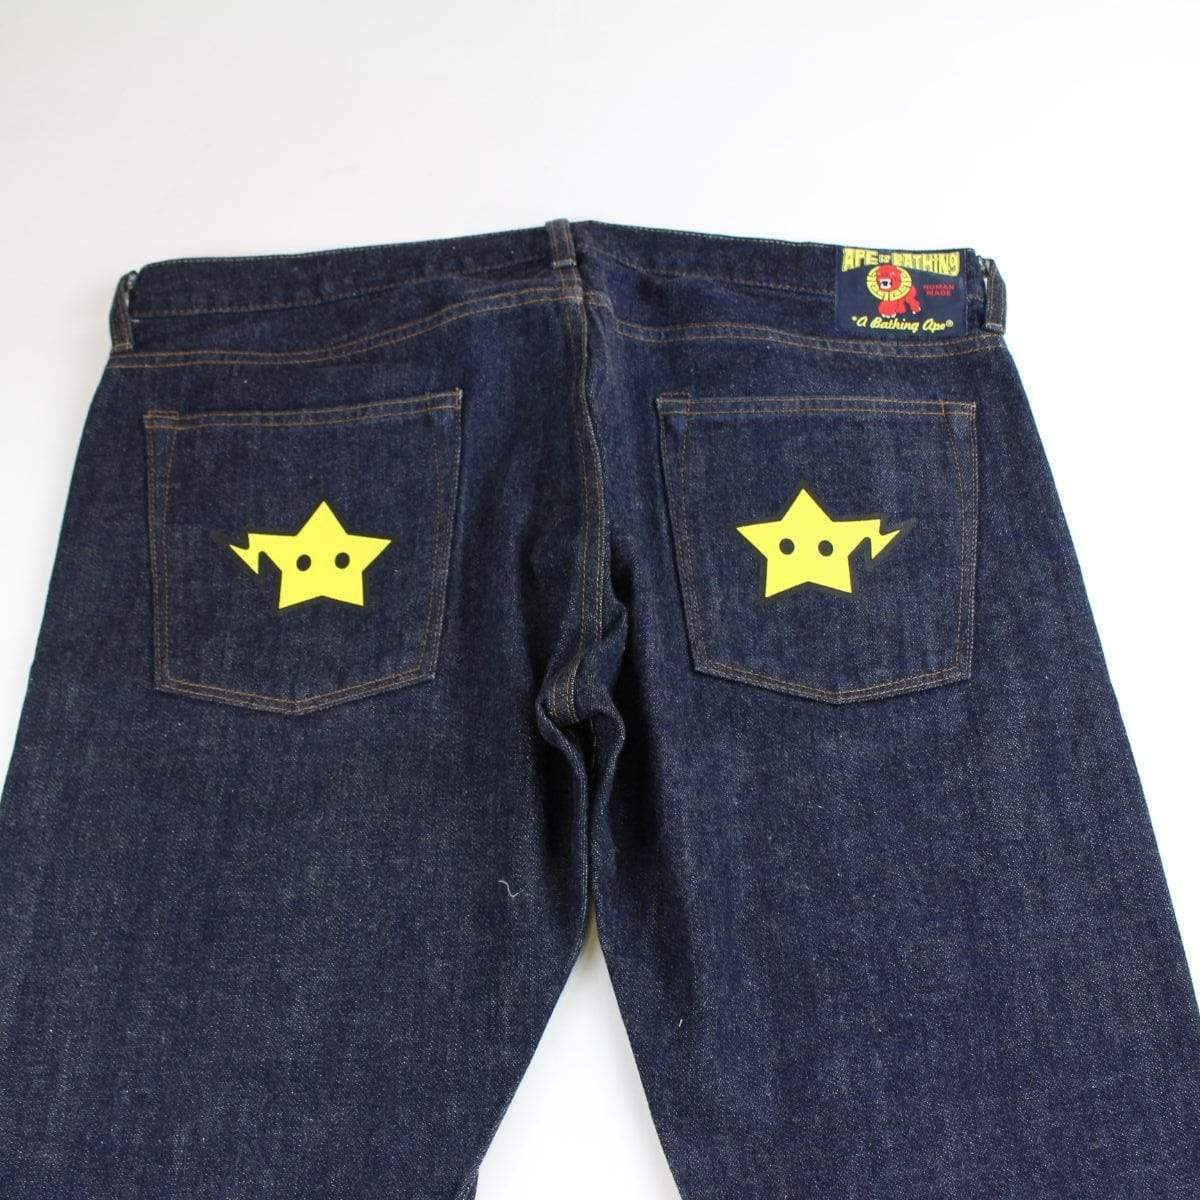 bape yellow bapestas jeans - SaruGeneral